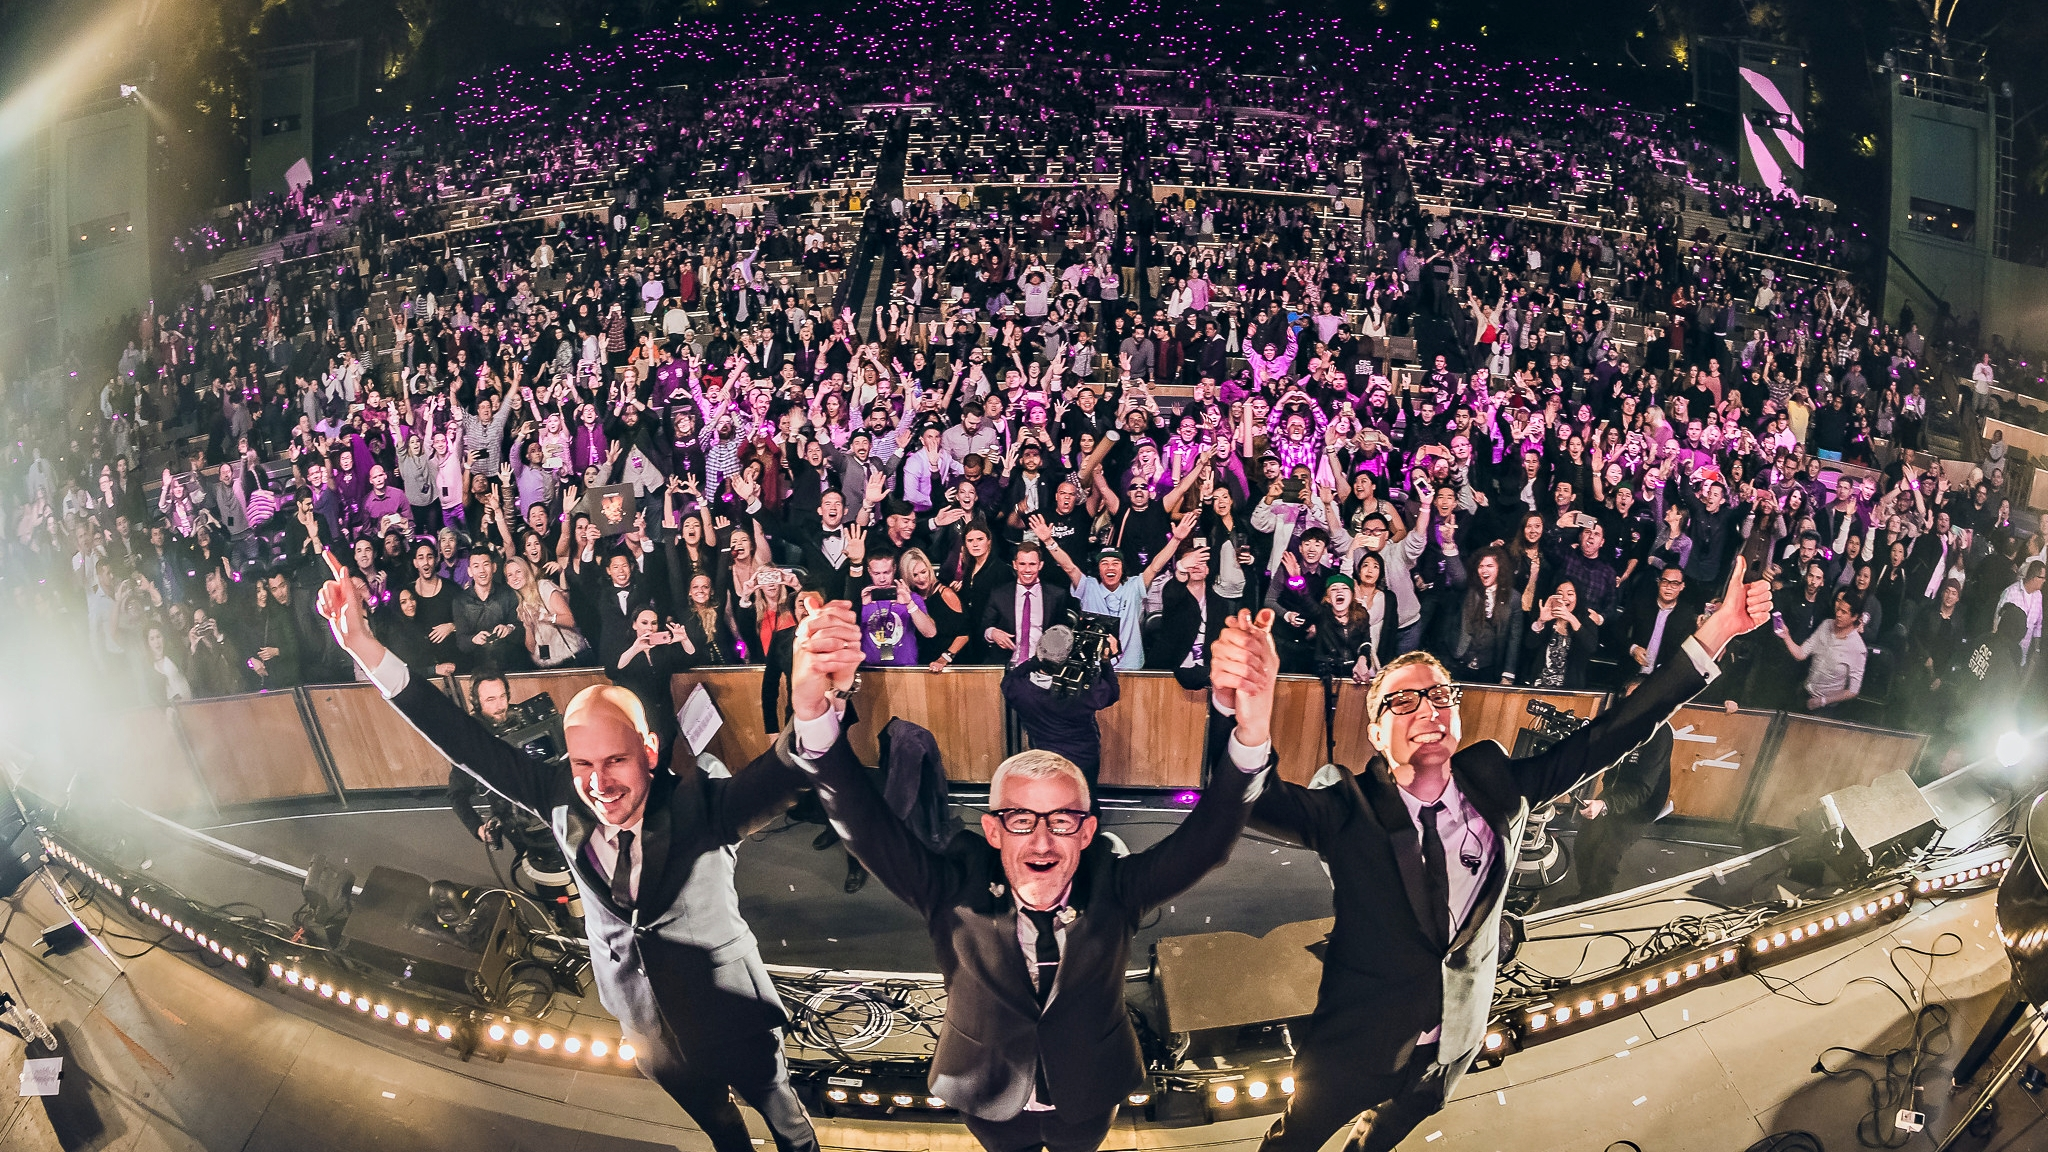 Cùng nghe album Acoustic: Live at the Hollywood Bowl của Above & Beyond